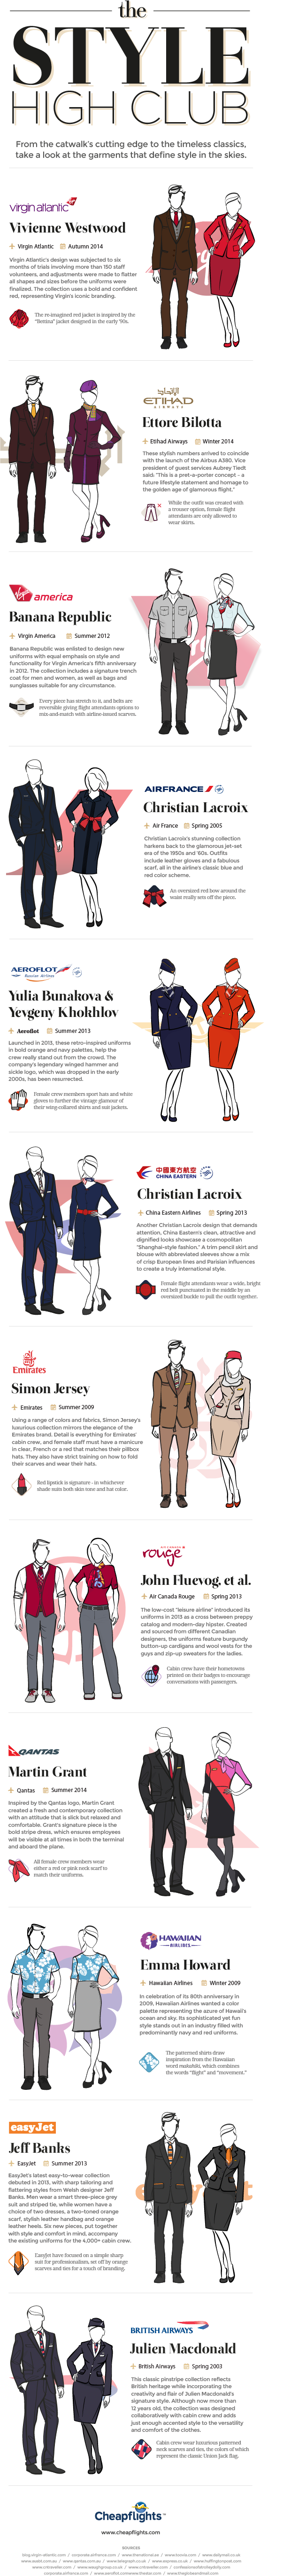 style-high-club-where-fashion-meets-the-skies-infographic